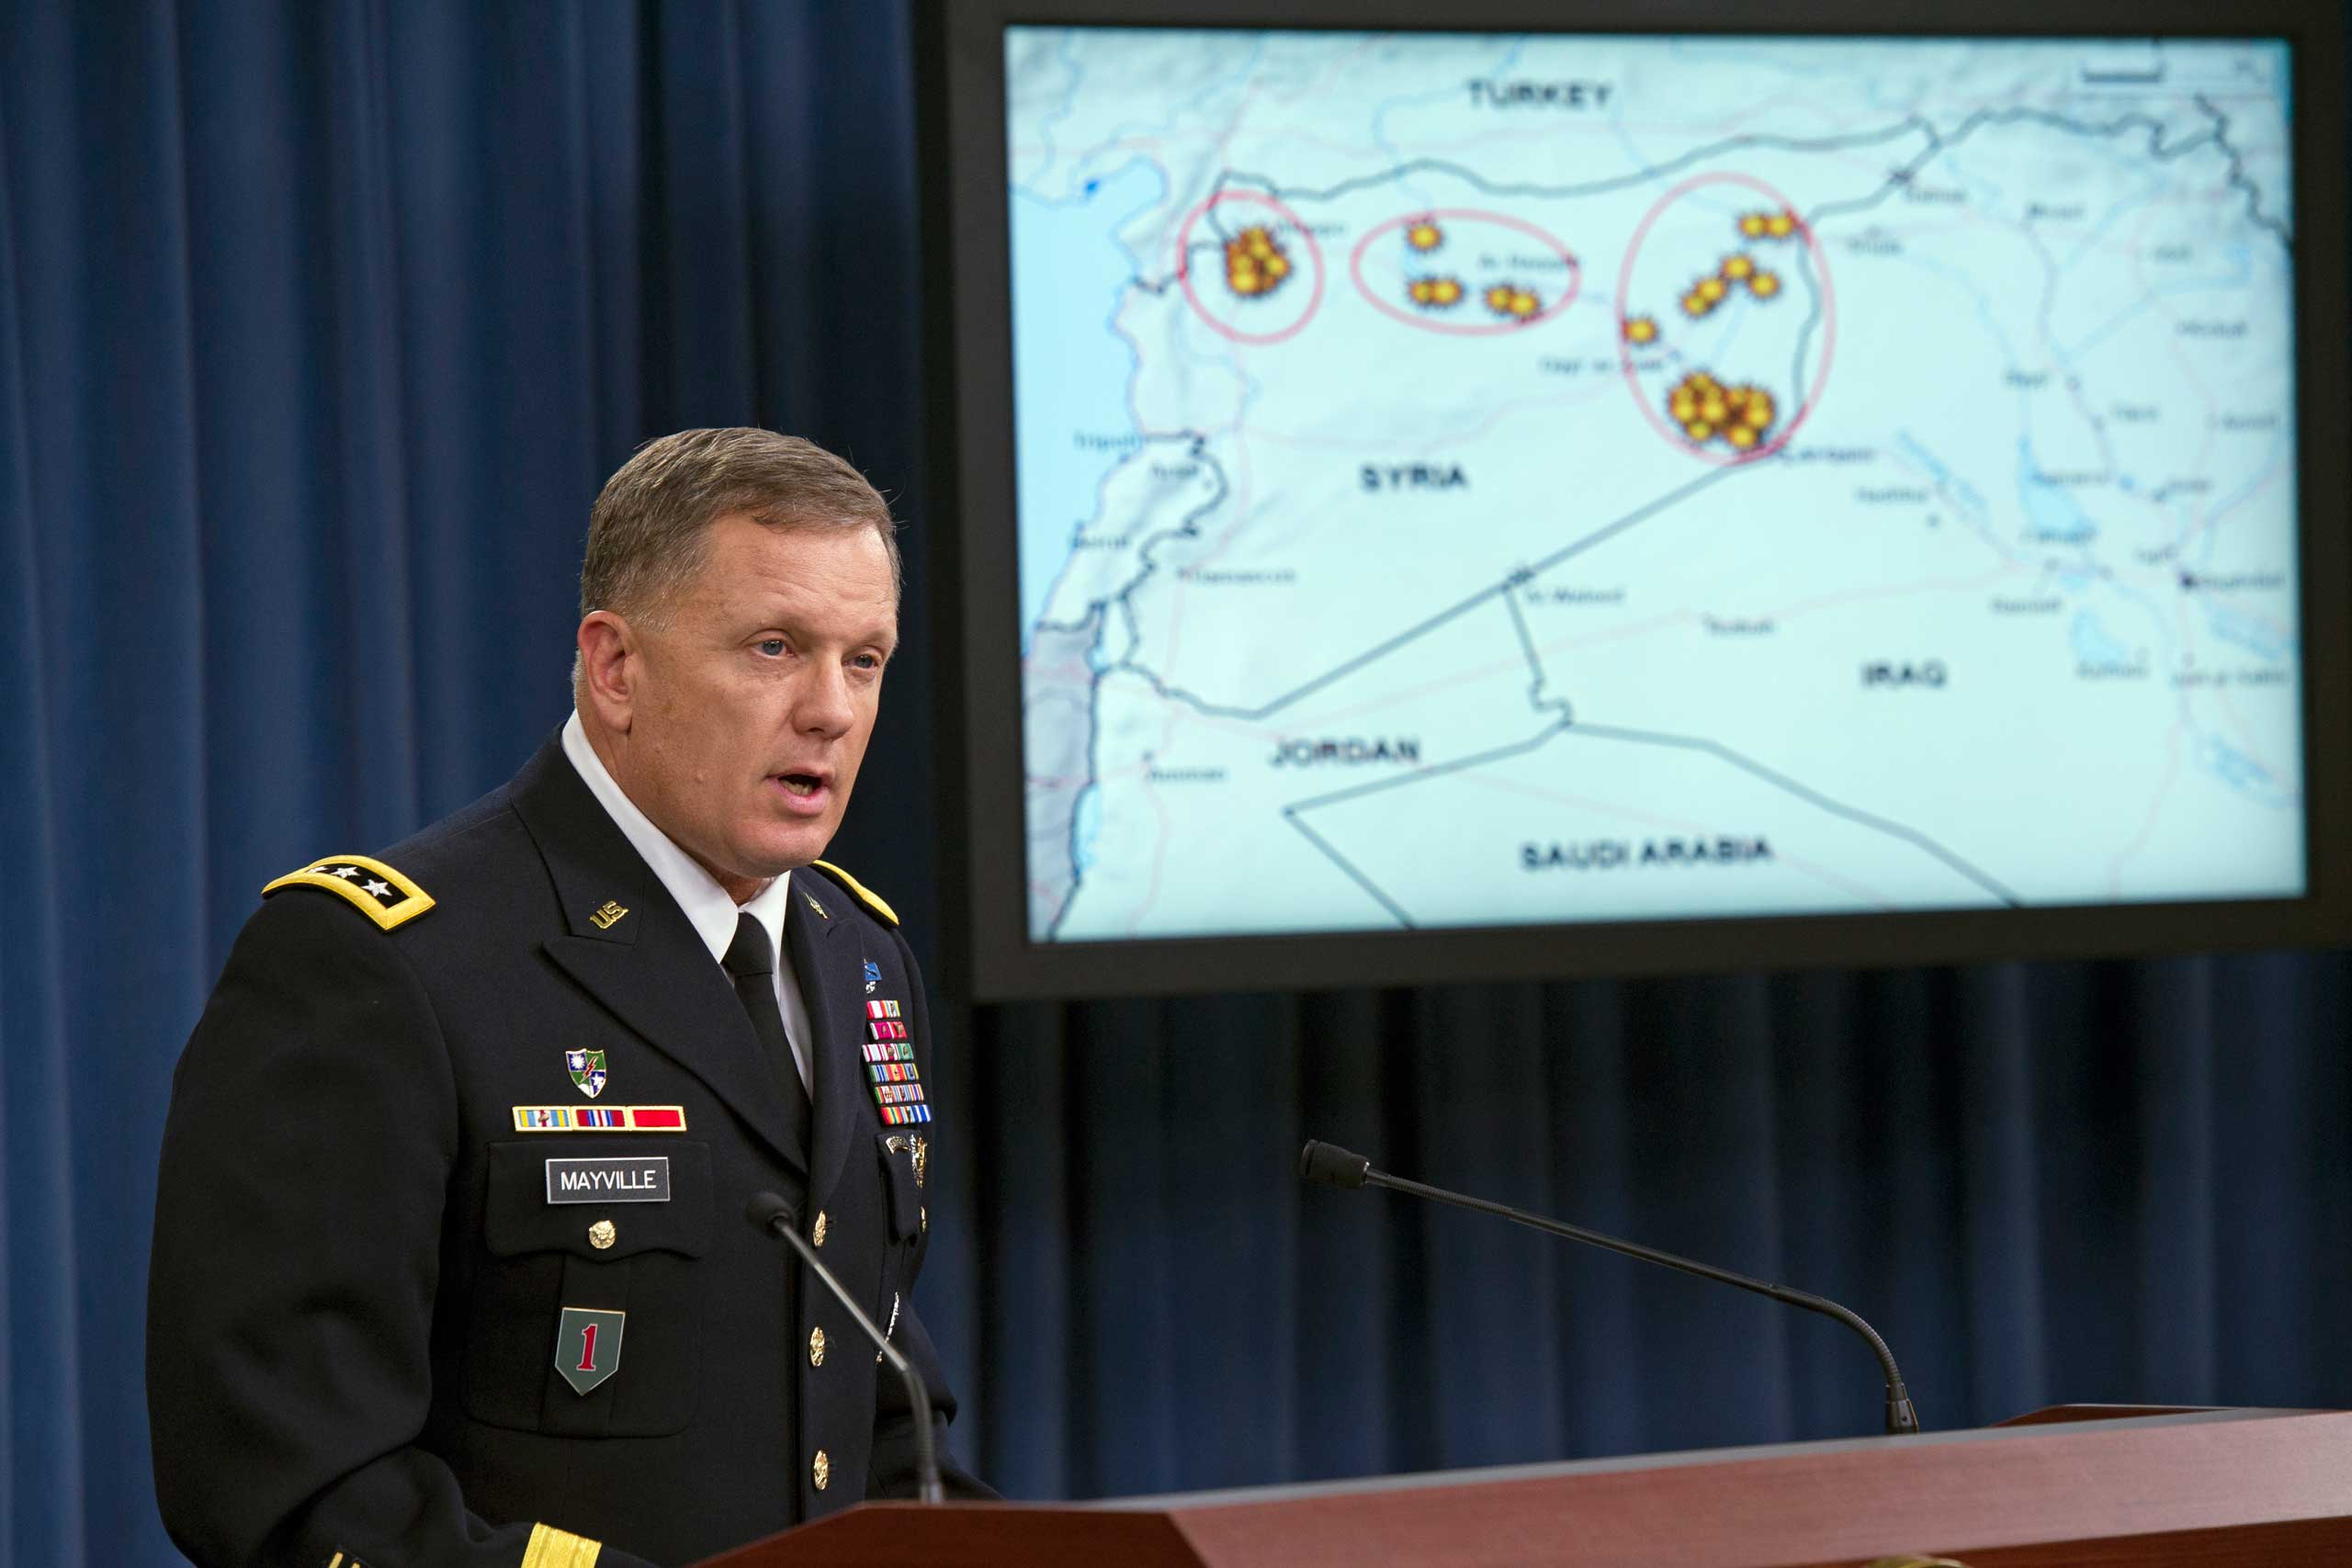 Army Lt. Gen. William Mayville, Jr., Director of Operations J3, speaks about the operations in Syria, Sept. 23, 2014, during a news conference at the Pentagon.